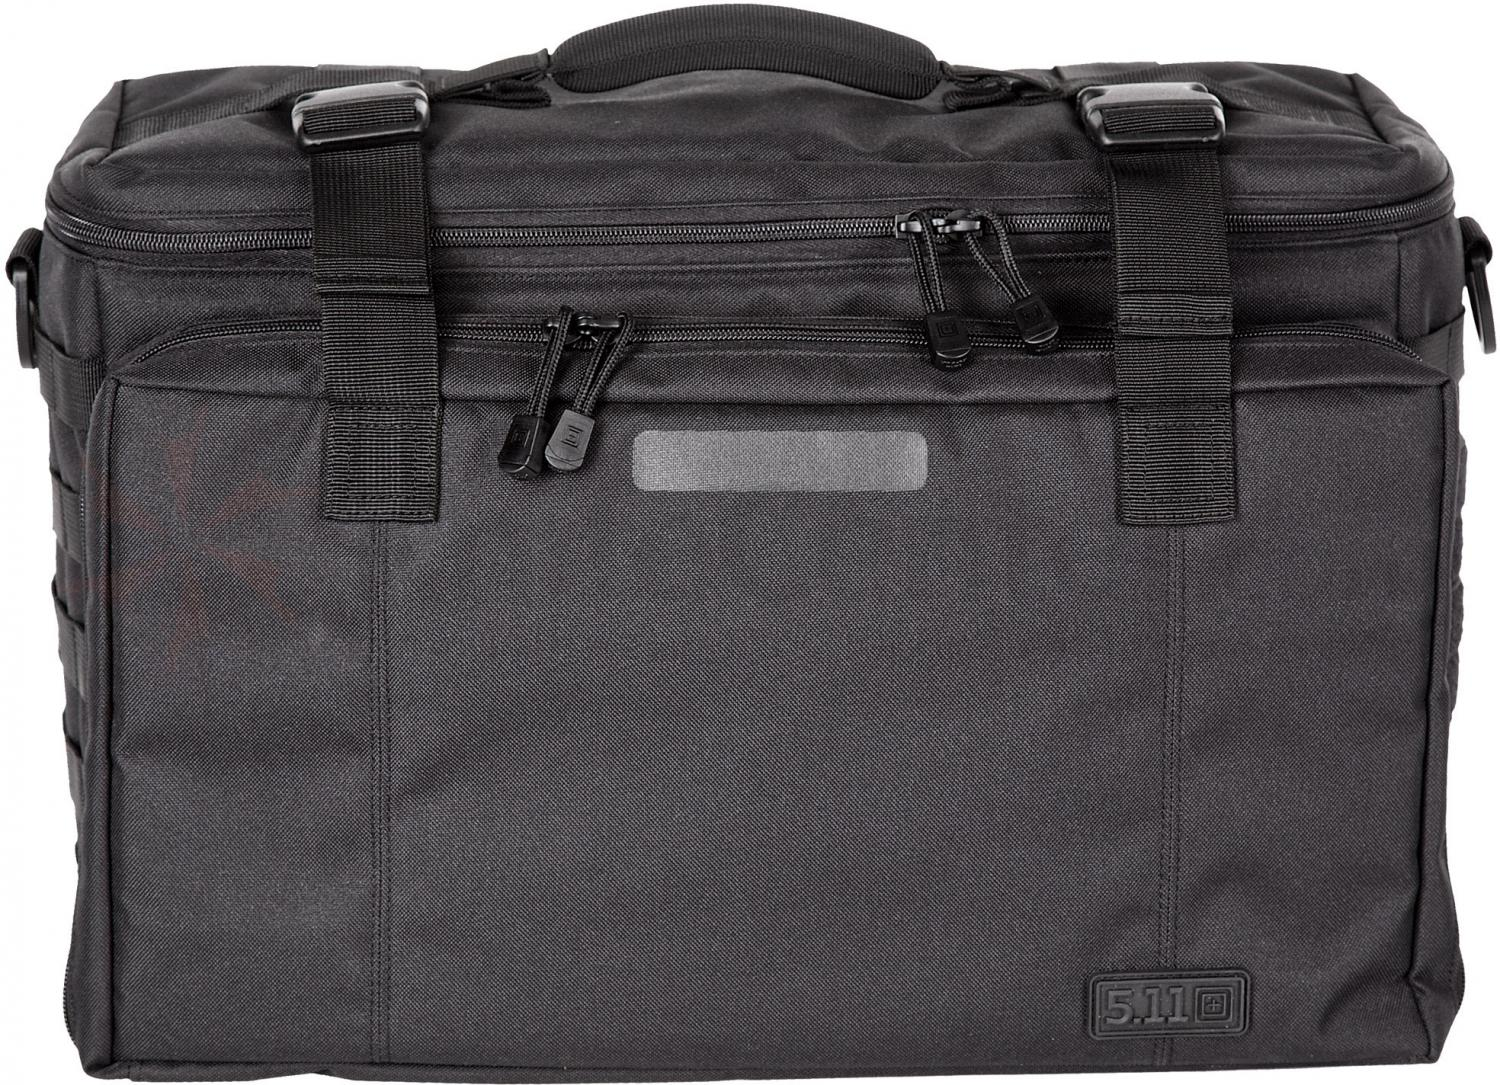 5.11 Tactical Wingman Patrol Bag, Black (56045)